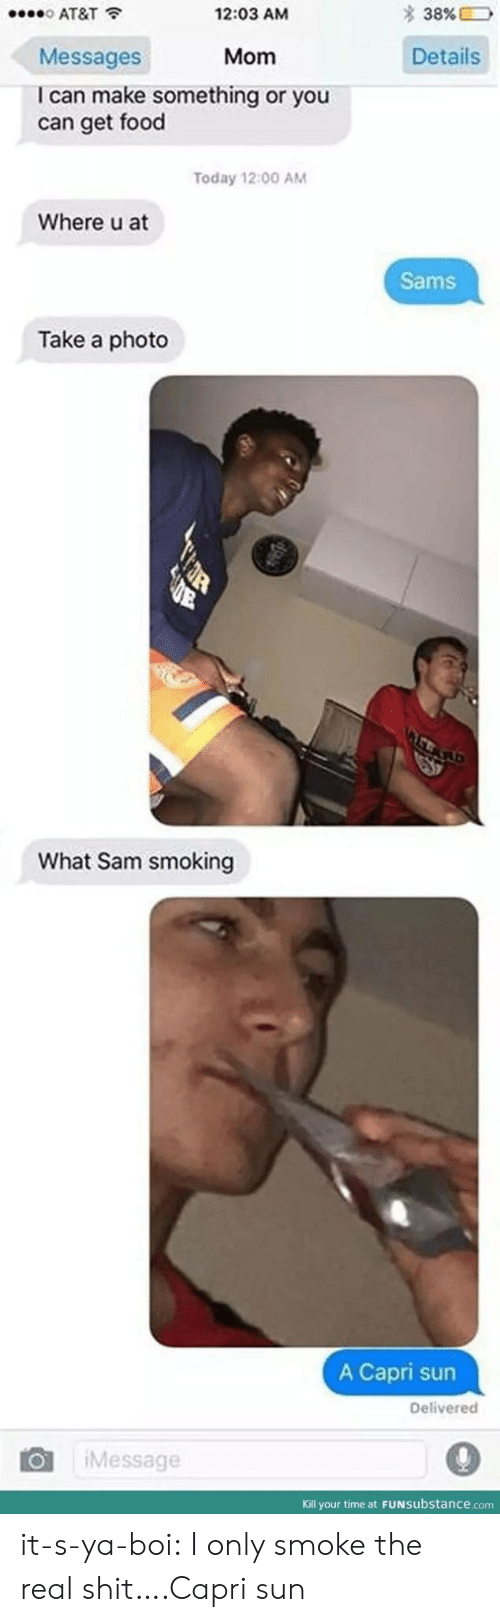 Sams: o AT&T  Messages  I can make something or you  2:03 AM  * 38%ED  Mom  Details  can get food  Today 12:00 AM  Where u at  Sams  Take a photo  What Sam smoking  A Capri sun  Delivered  101 | ¡Message  Kill your time at FUNsubstance.com it-s-ya-boi:  I only smoke the real shit….Capri sun